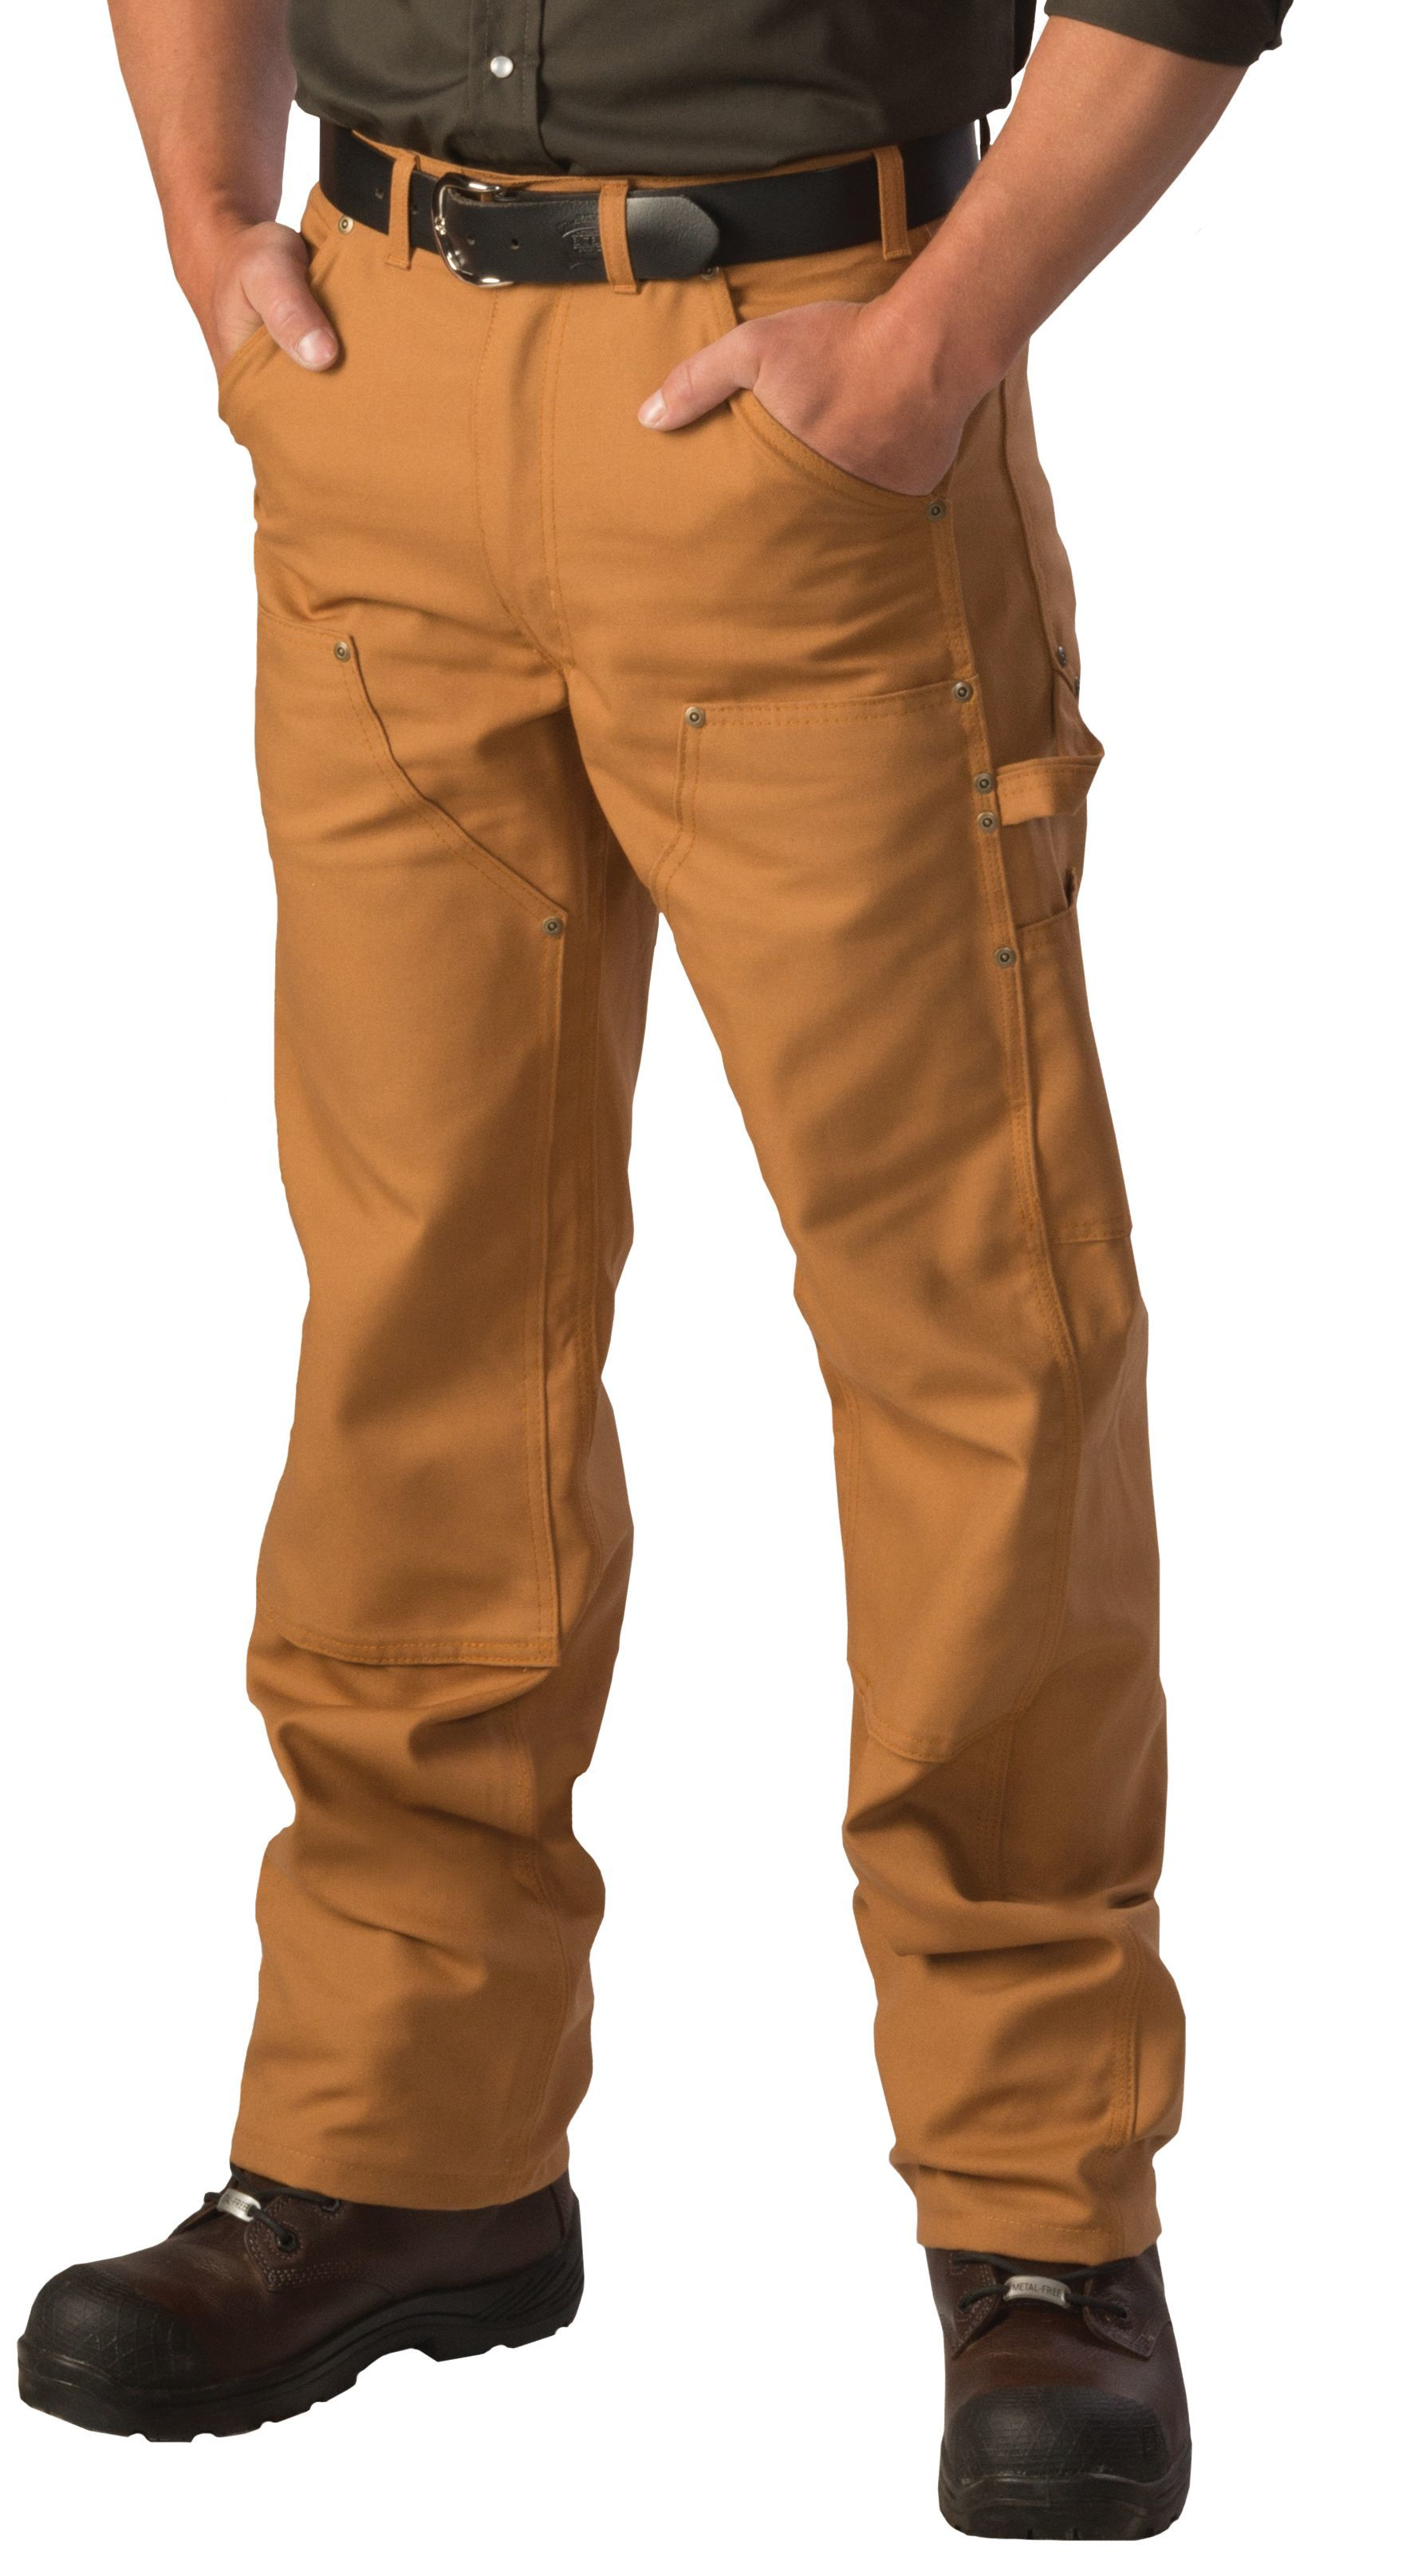 12.2 oz Duck Logger Jeans-BIG BILL